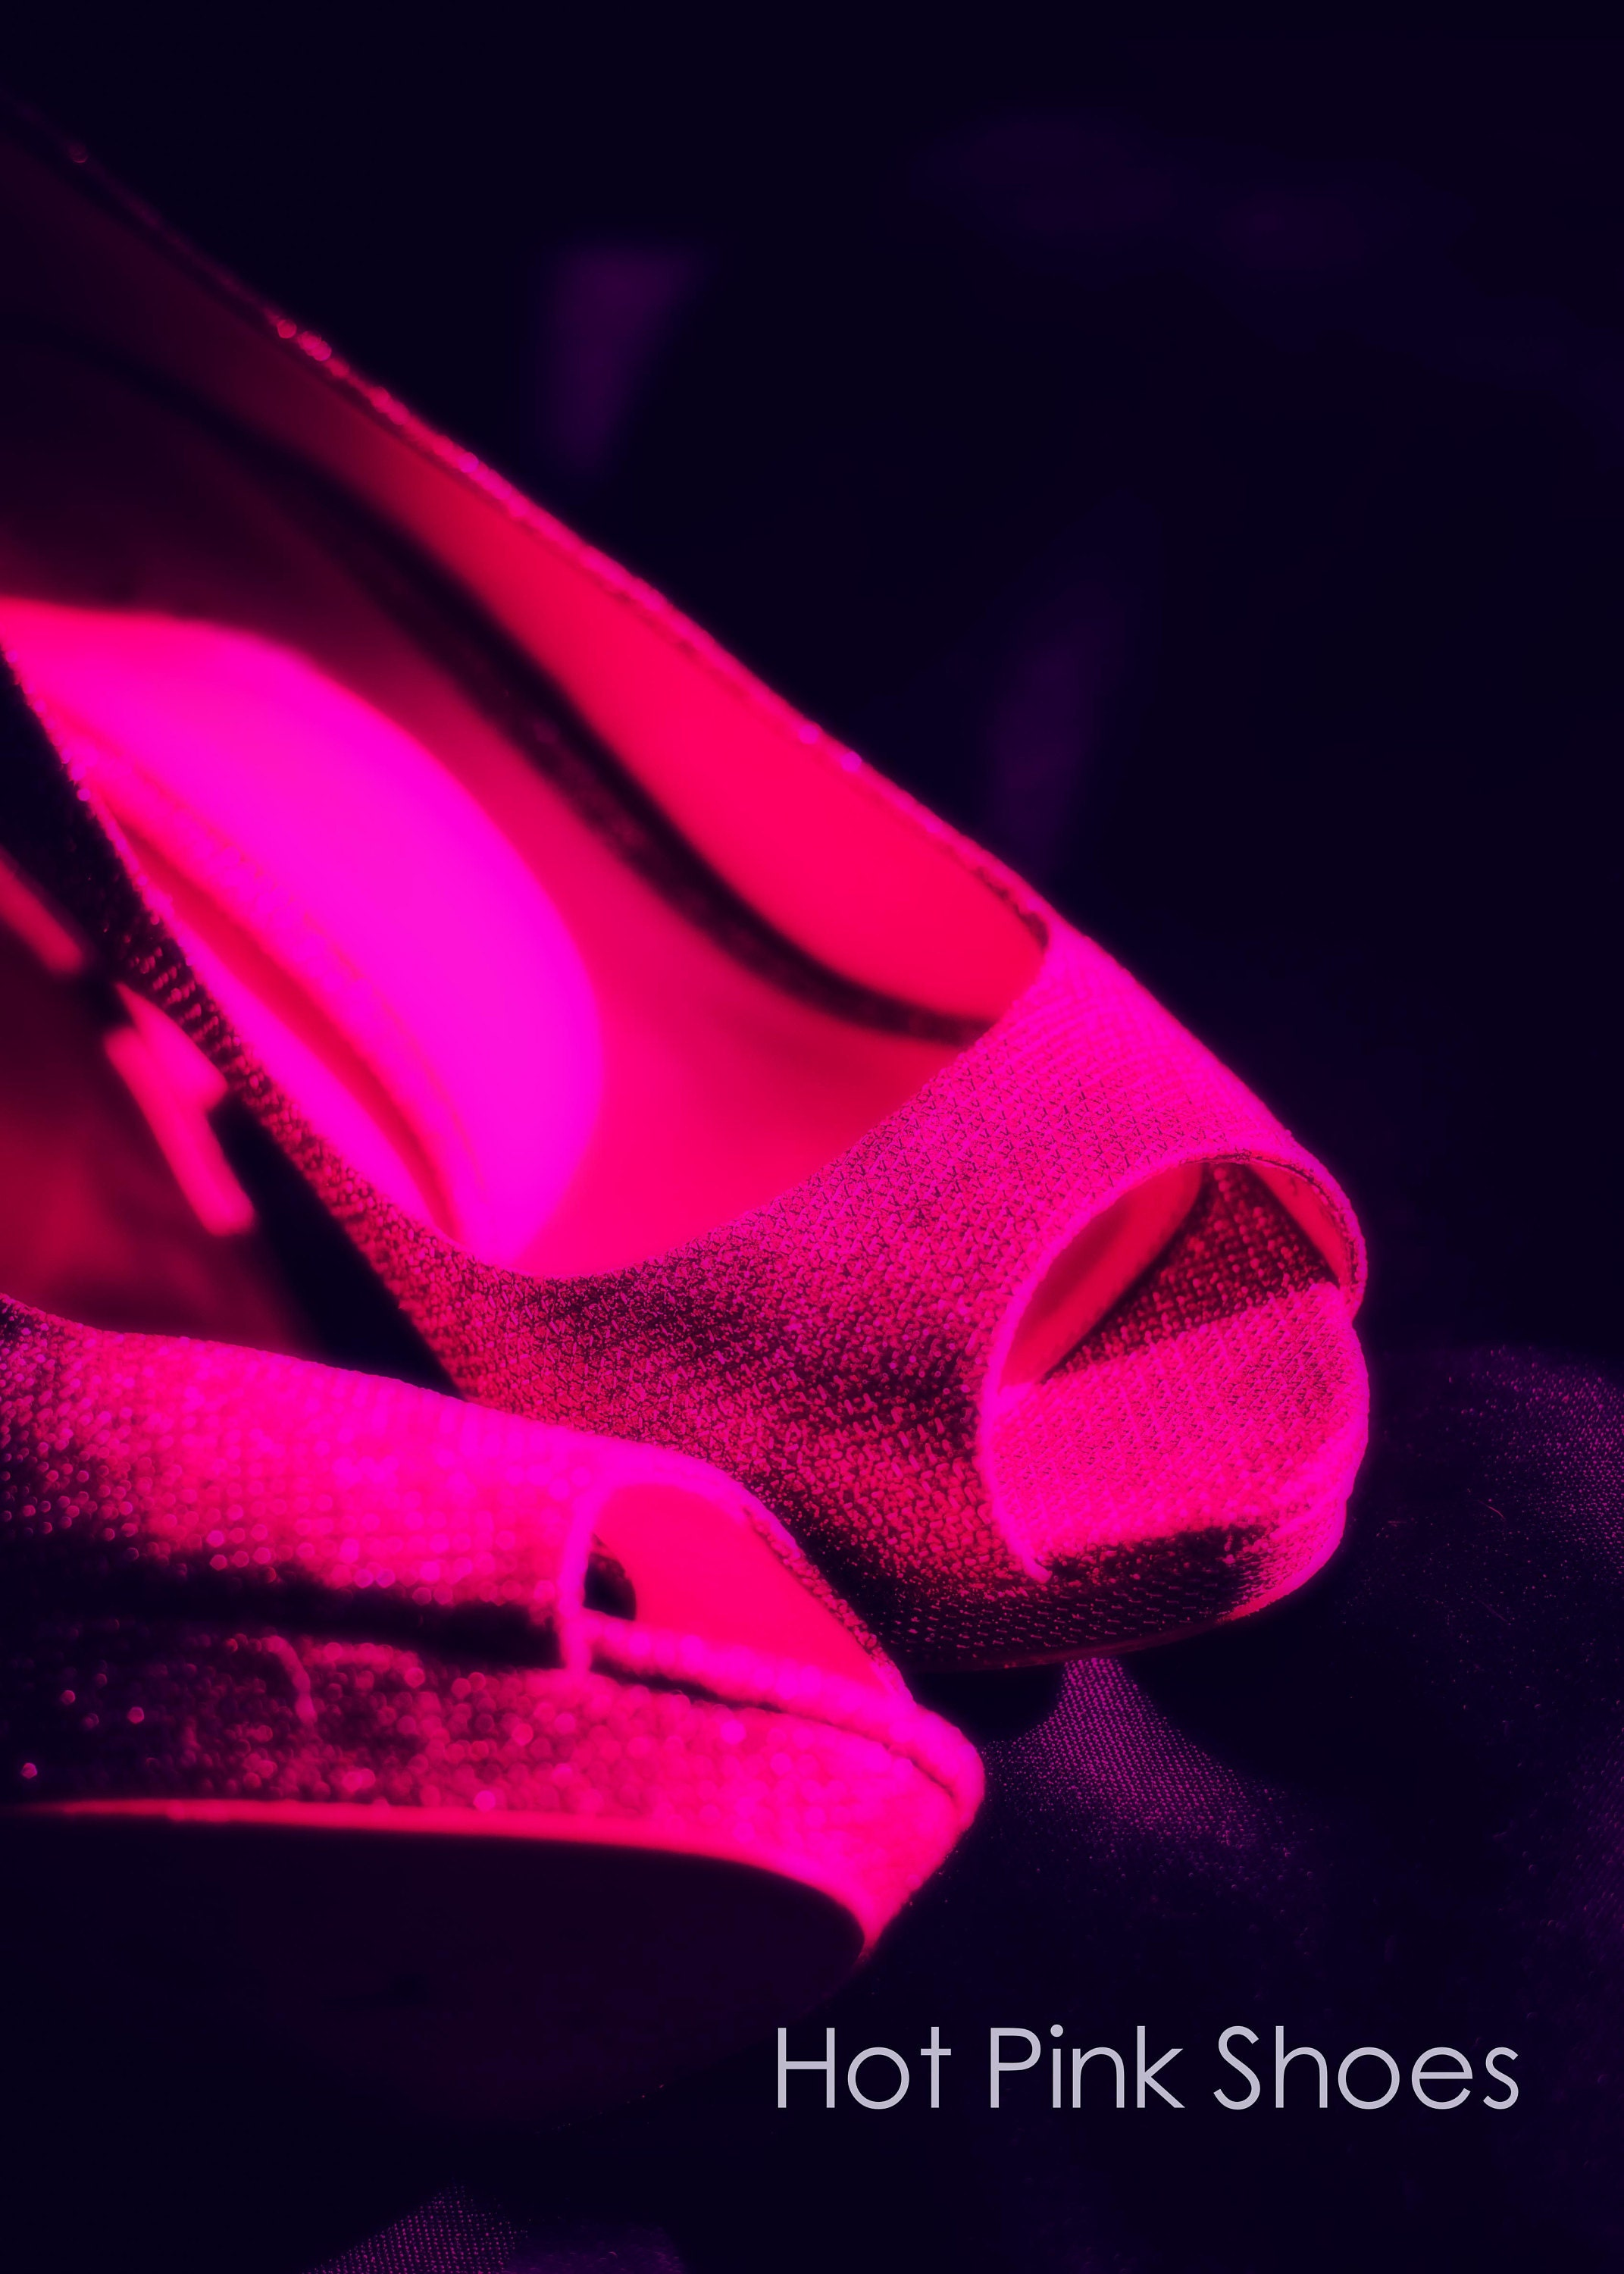 pink high heeled shoe wall art and fine art prints- peep toe stiletto shoe in pink with a black background available in custom sizes and a range of finishes including unframed print, canvas, art panel and box frame